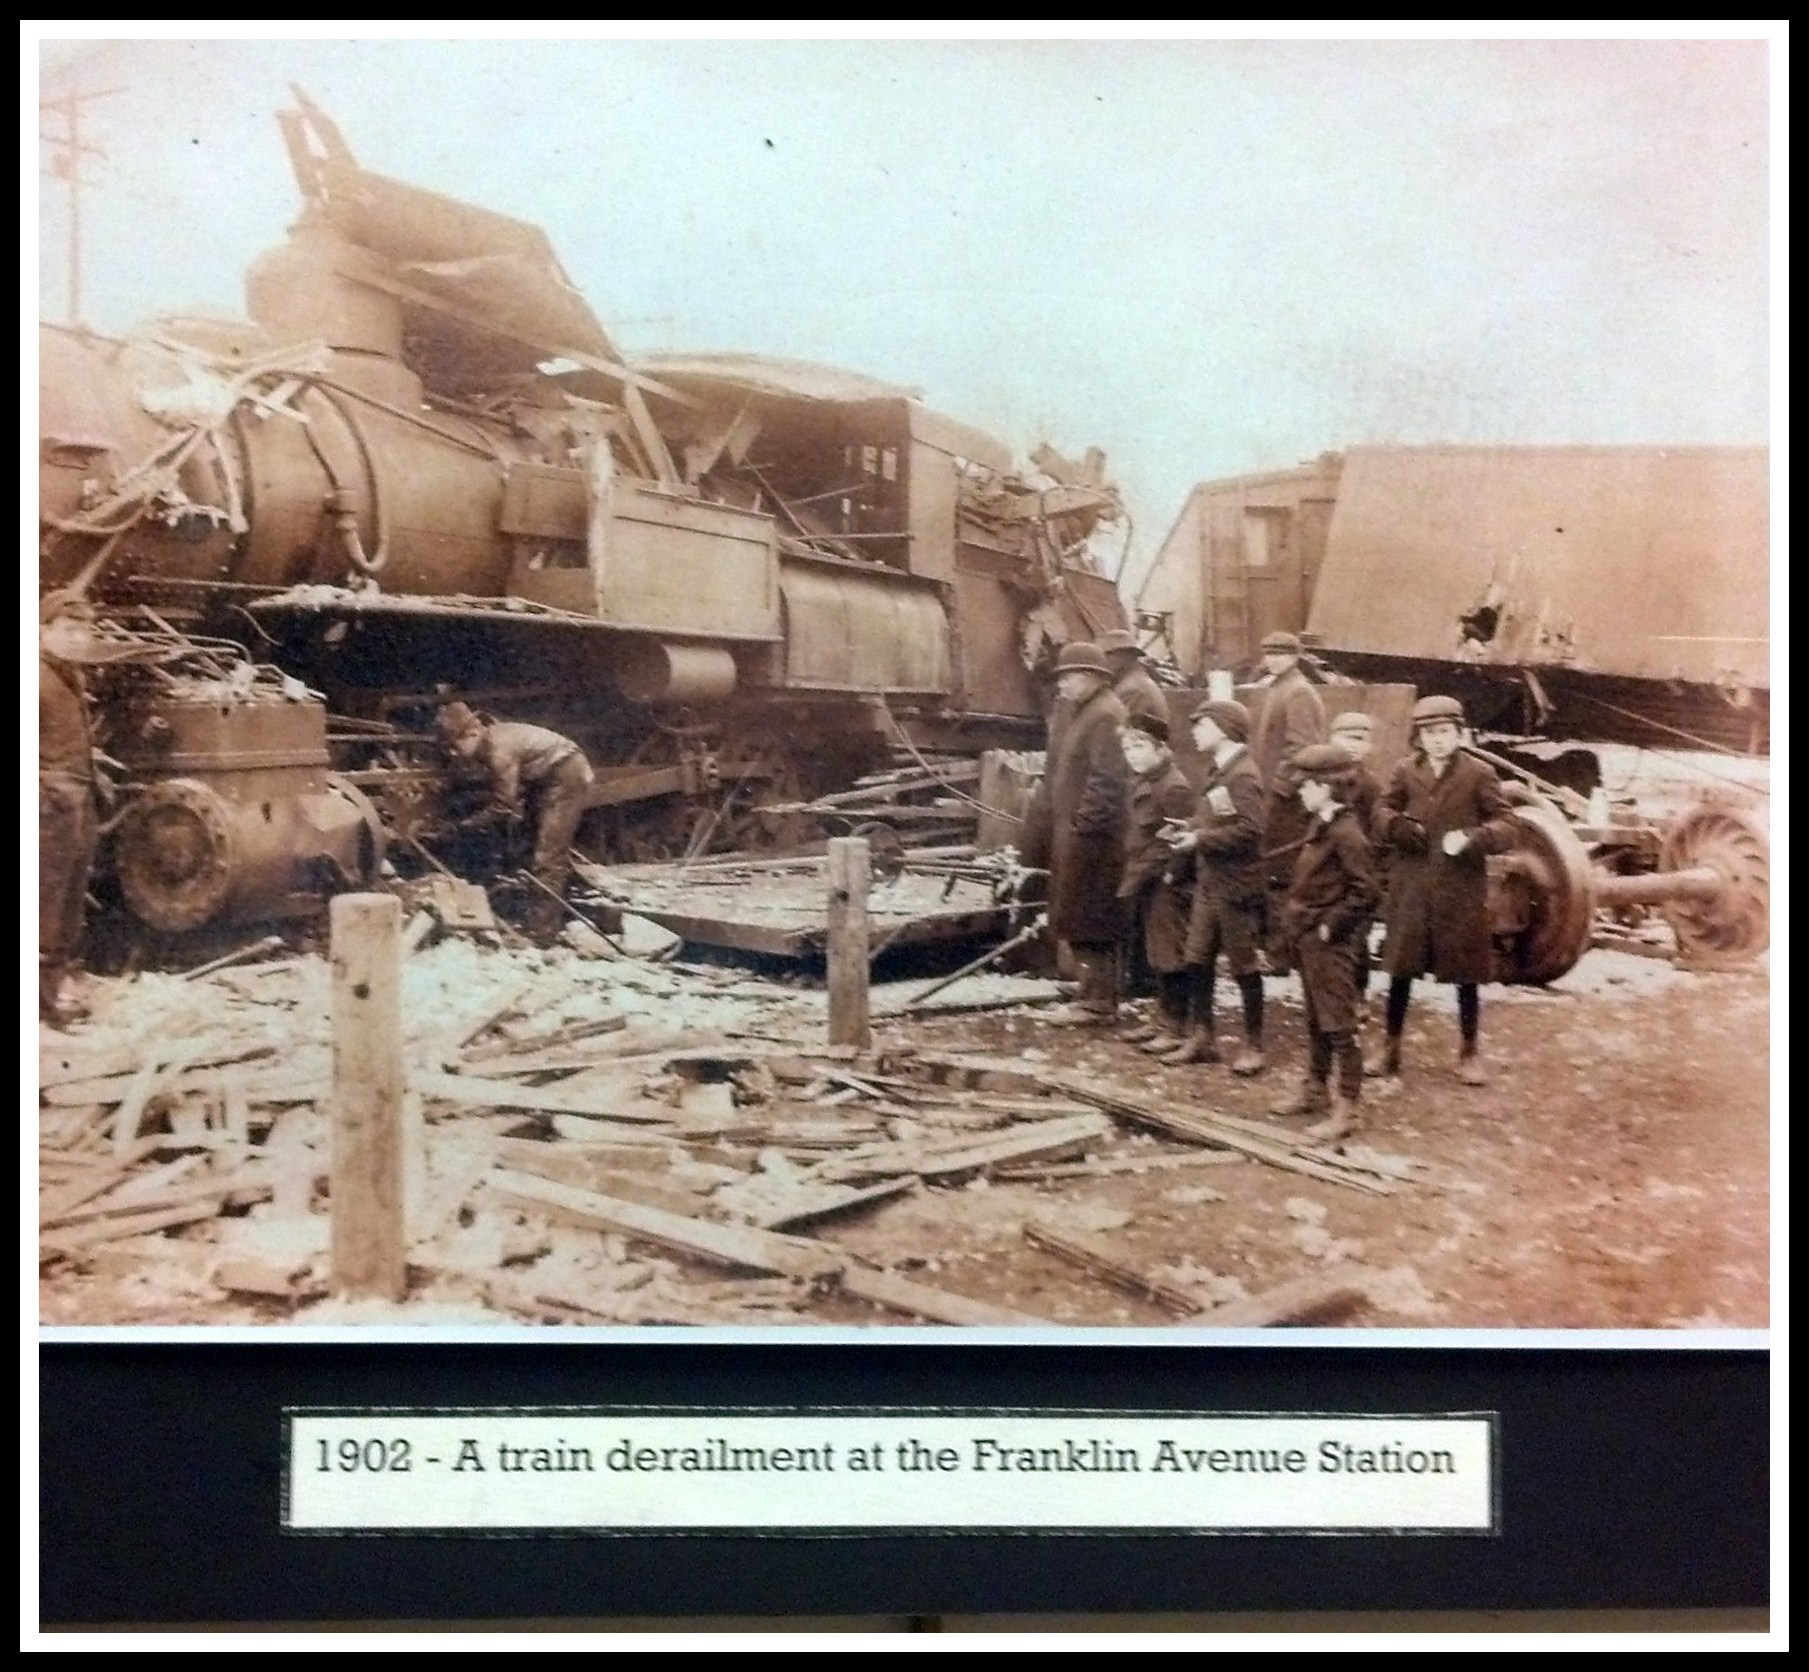 Franklin Avenue Rail Station Derailment 1902 Nutley NJ